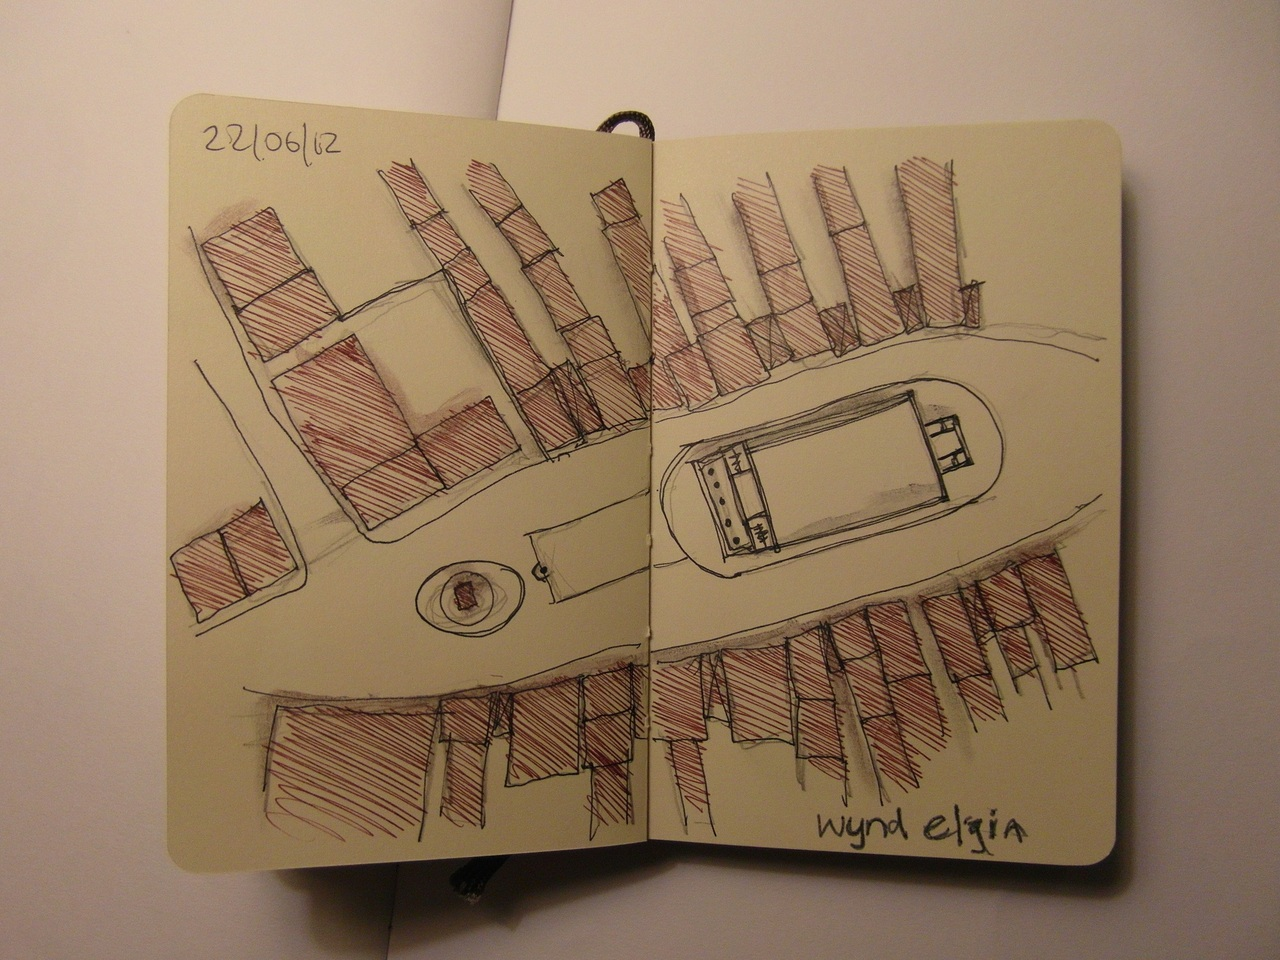 365 drawings later … day 143 … wynd elgin